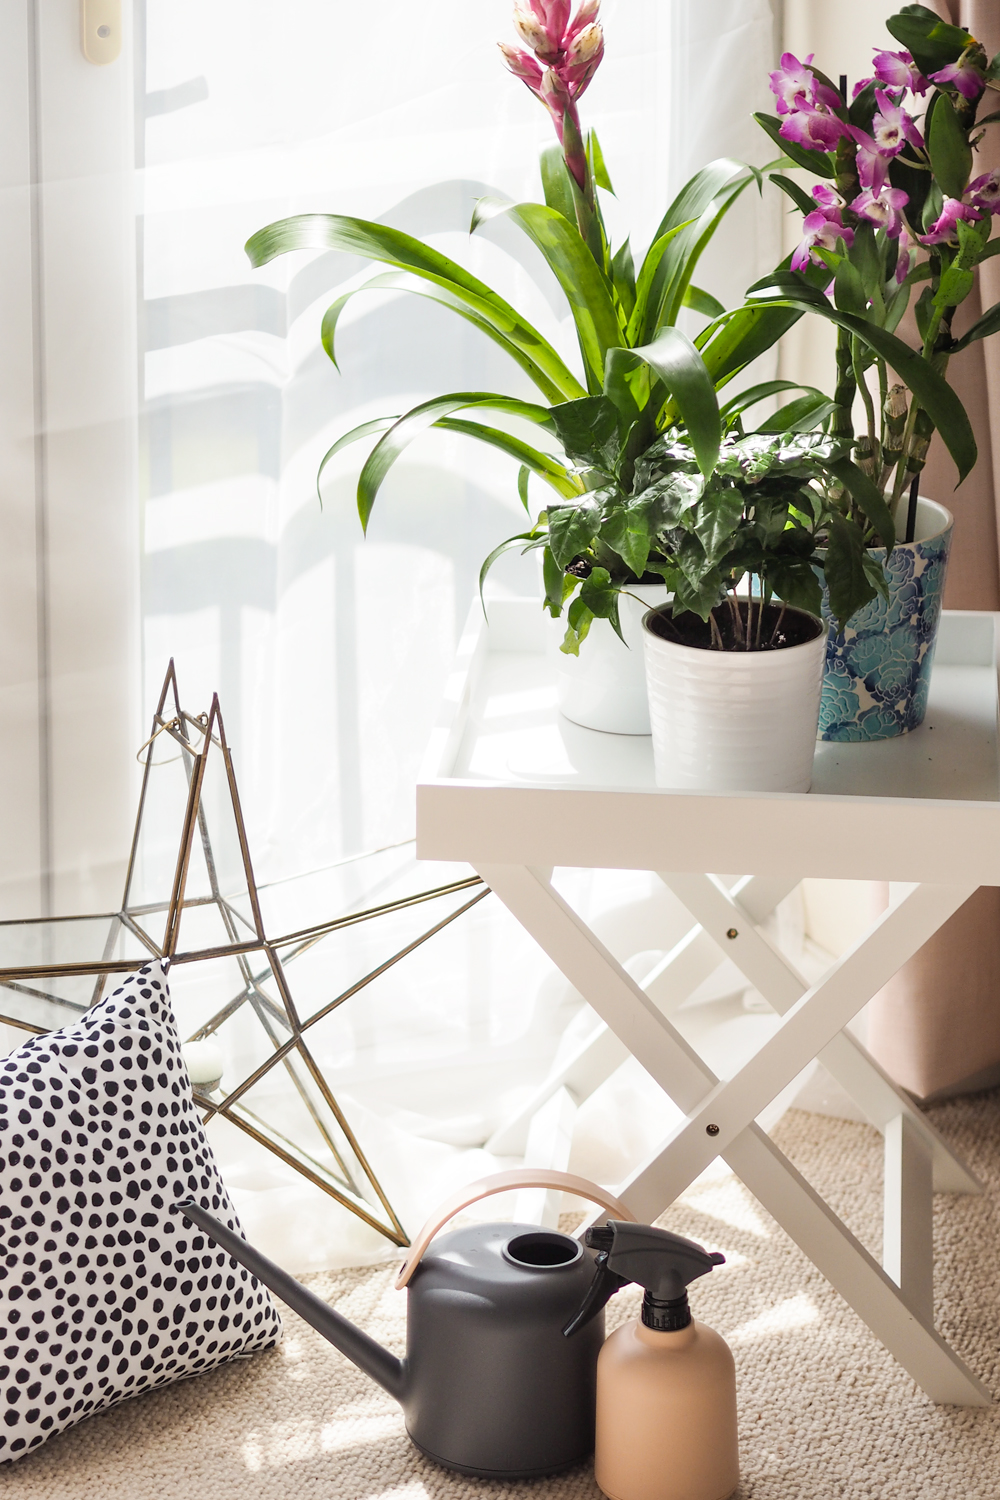 Today I'm sharing how to create an indoor garden in your city apartment, when outdoor space is something you crave. Teaming up with Lazy Flora, discover more about their indoor plant subscription service.